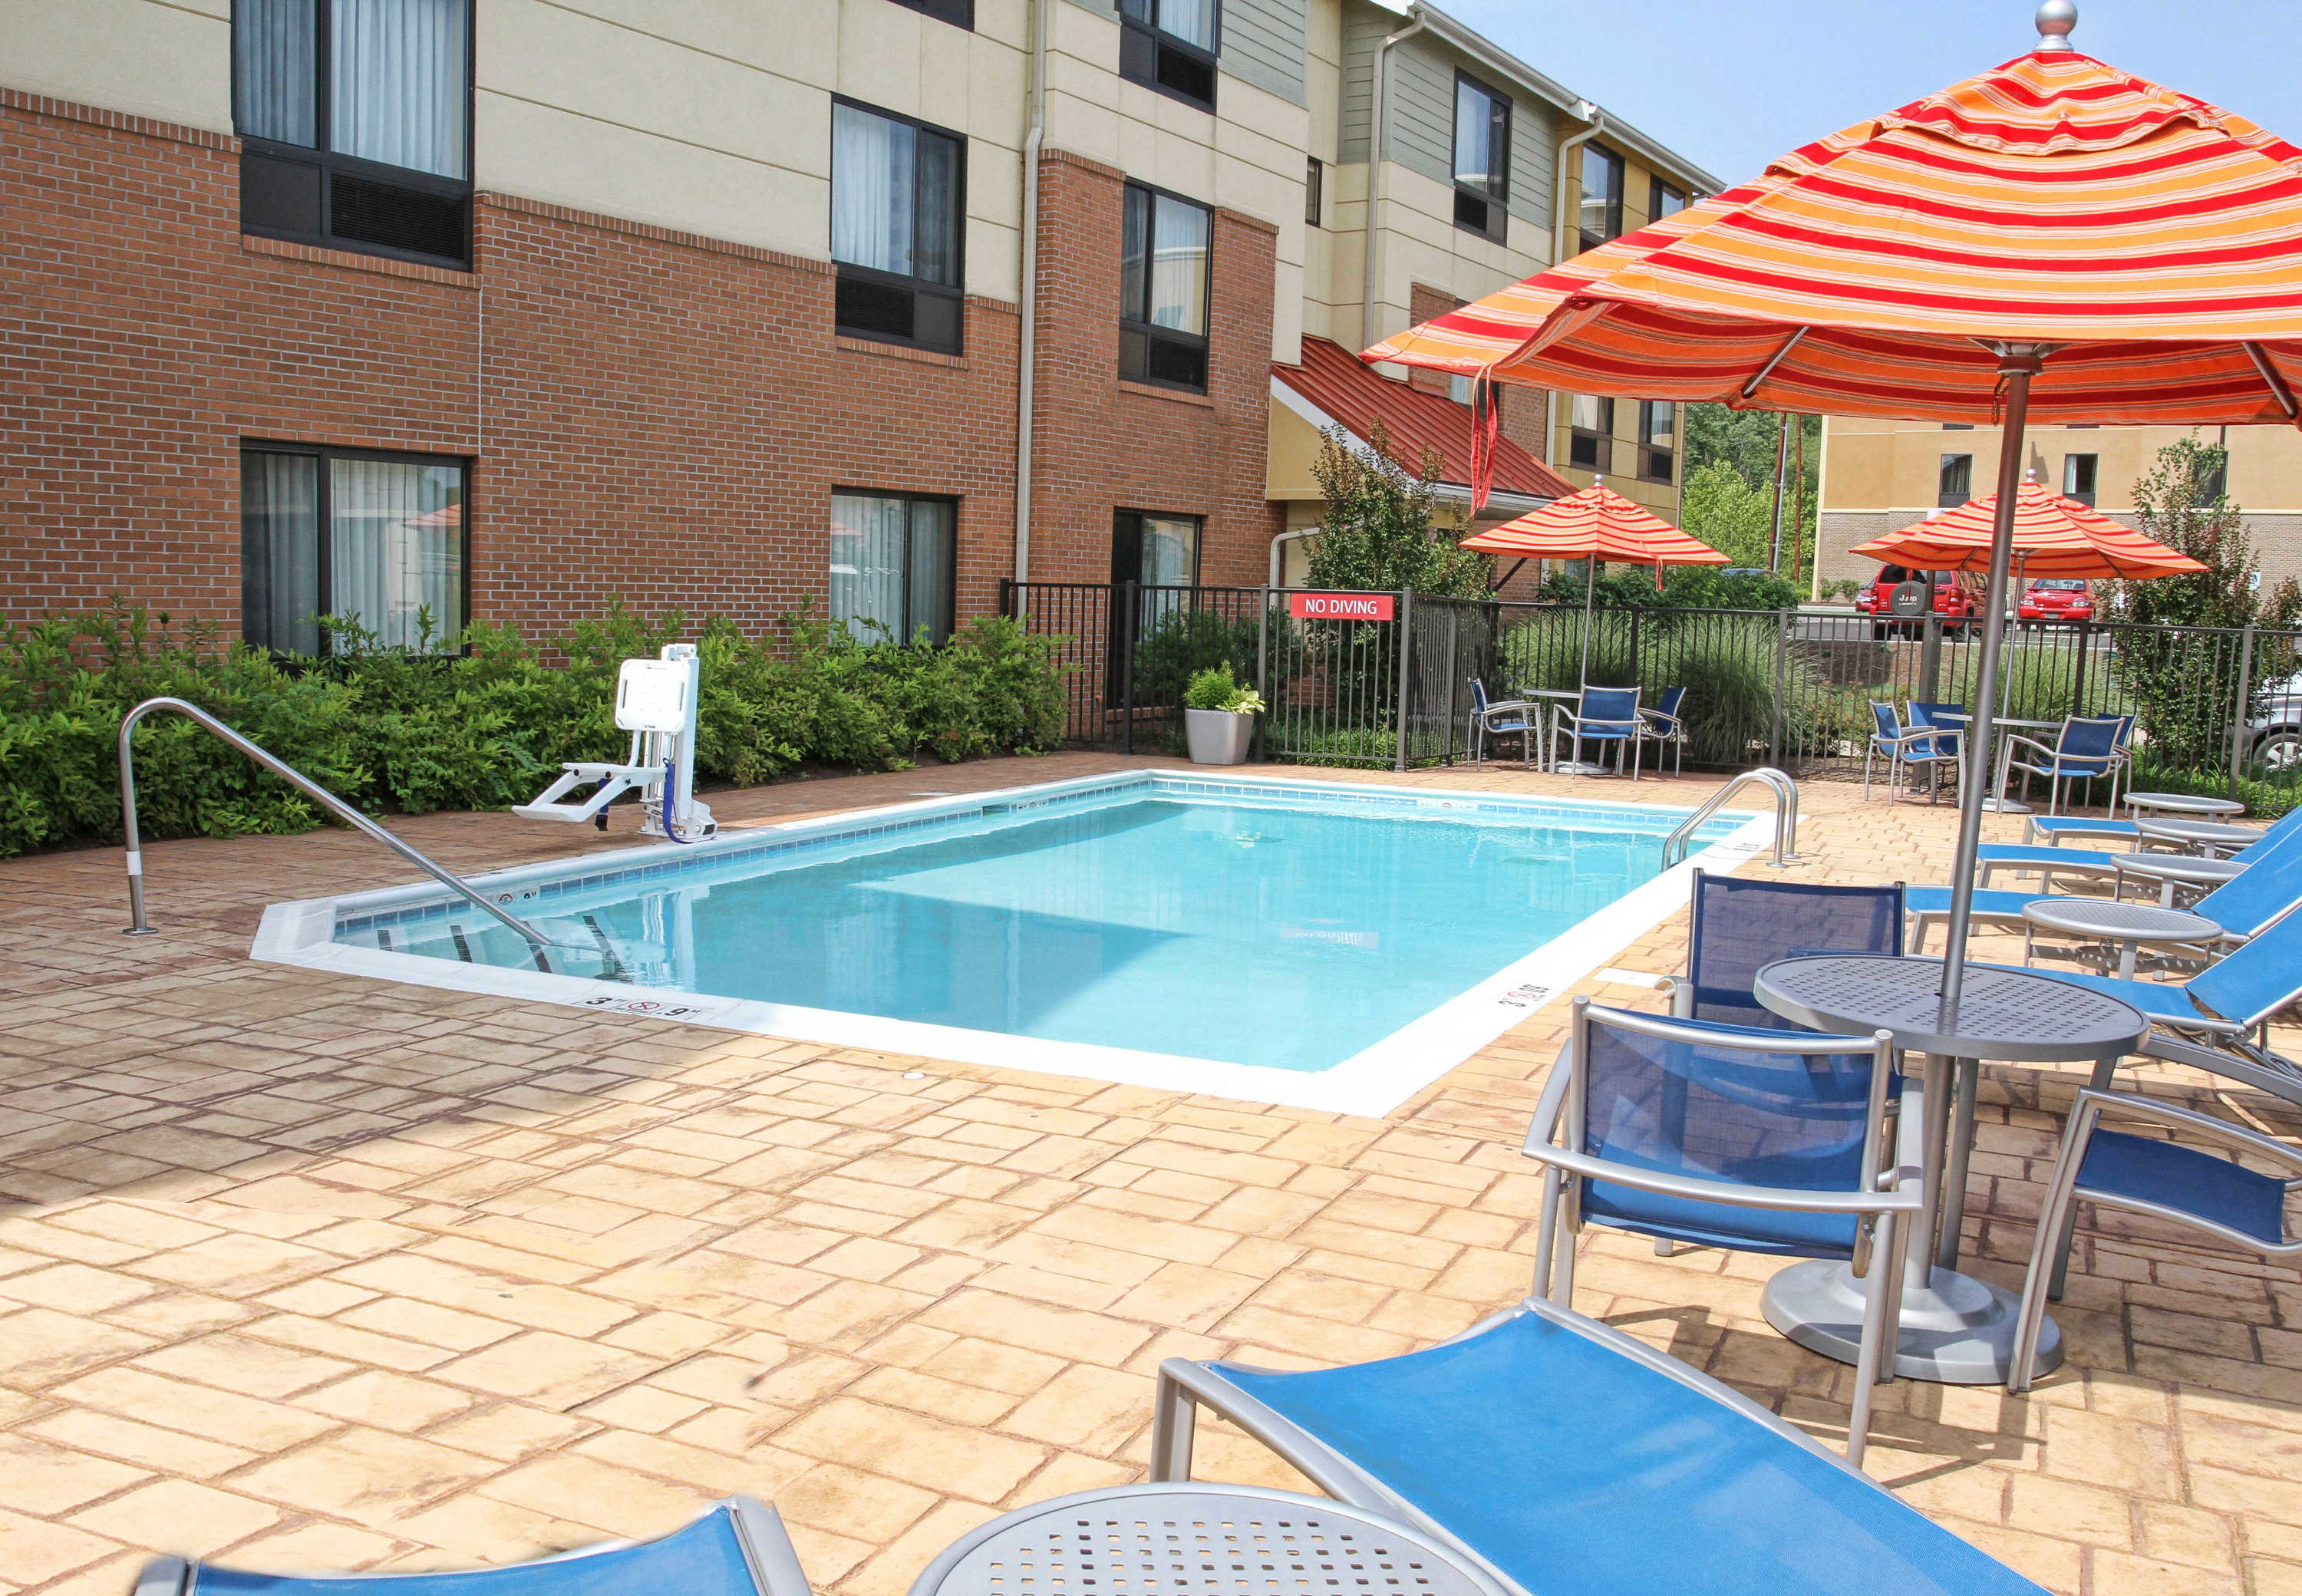 TownePlace Suites by Marriott Huntington image 0